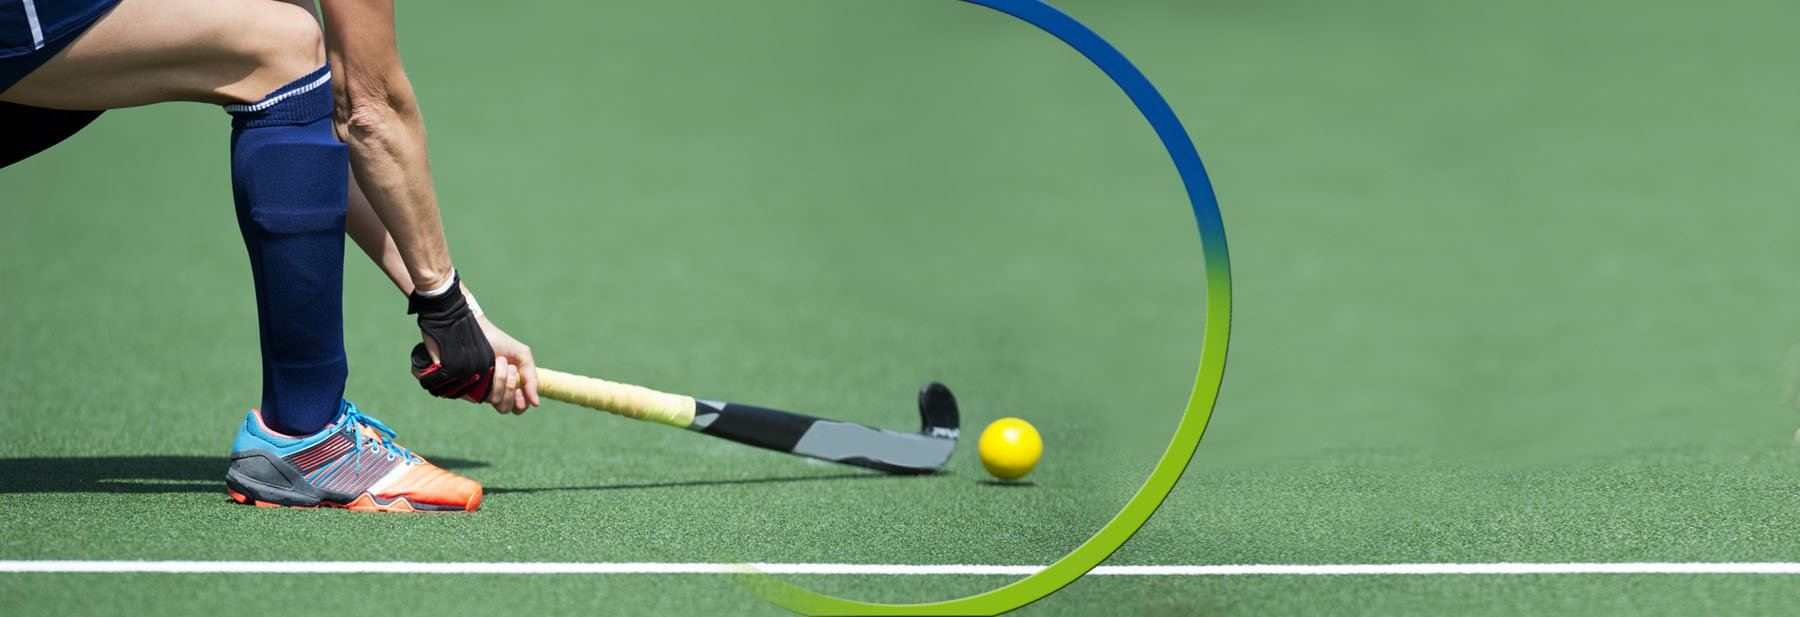 Field Hockey Management Software for Clubs